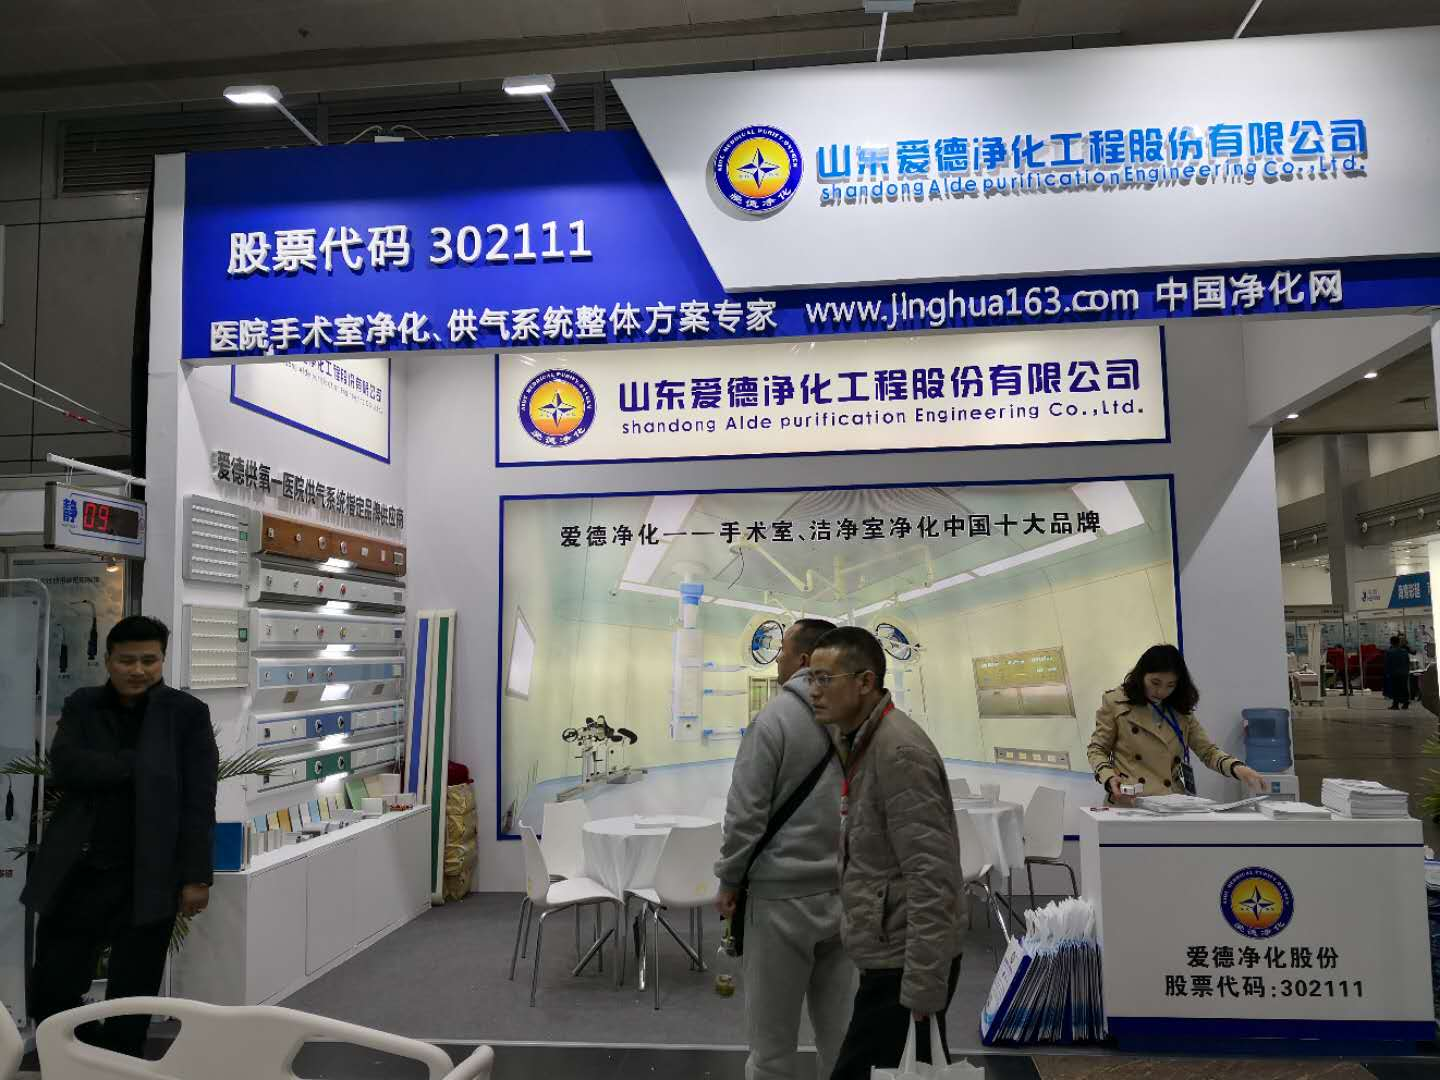 Aide purification shares participated in the 34th Hubei (Wuhan) International Advanced Medical Instrument Exhibition